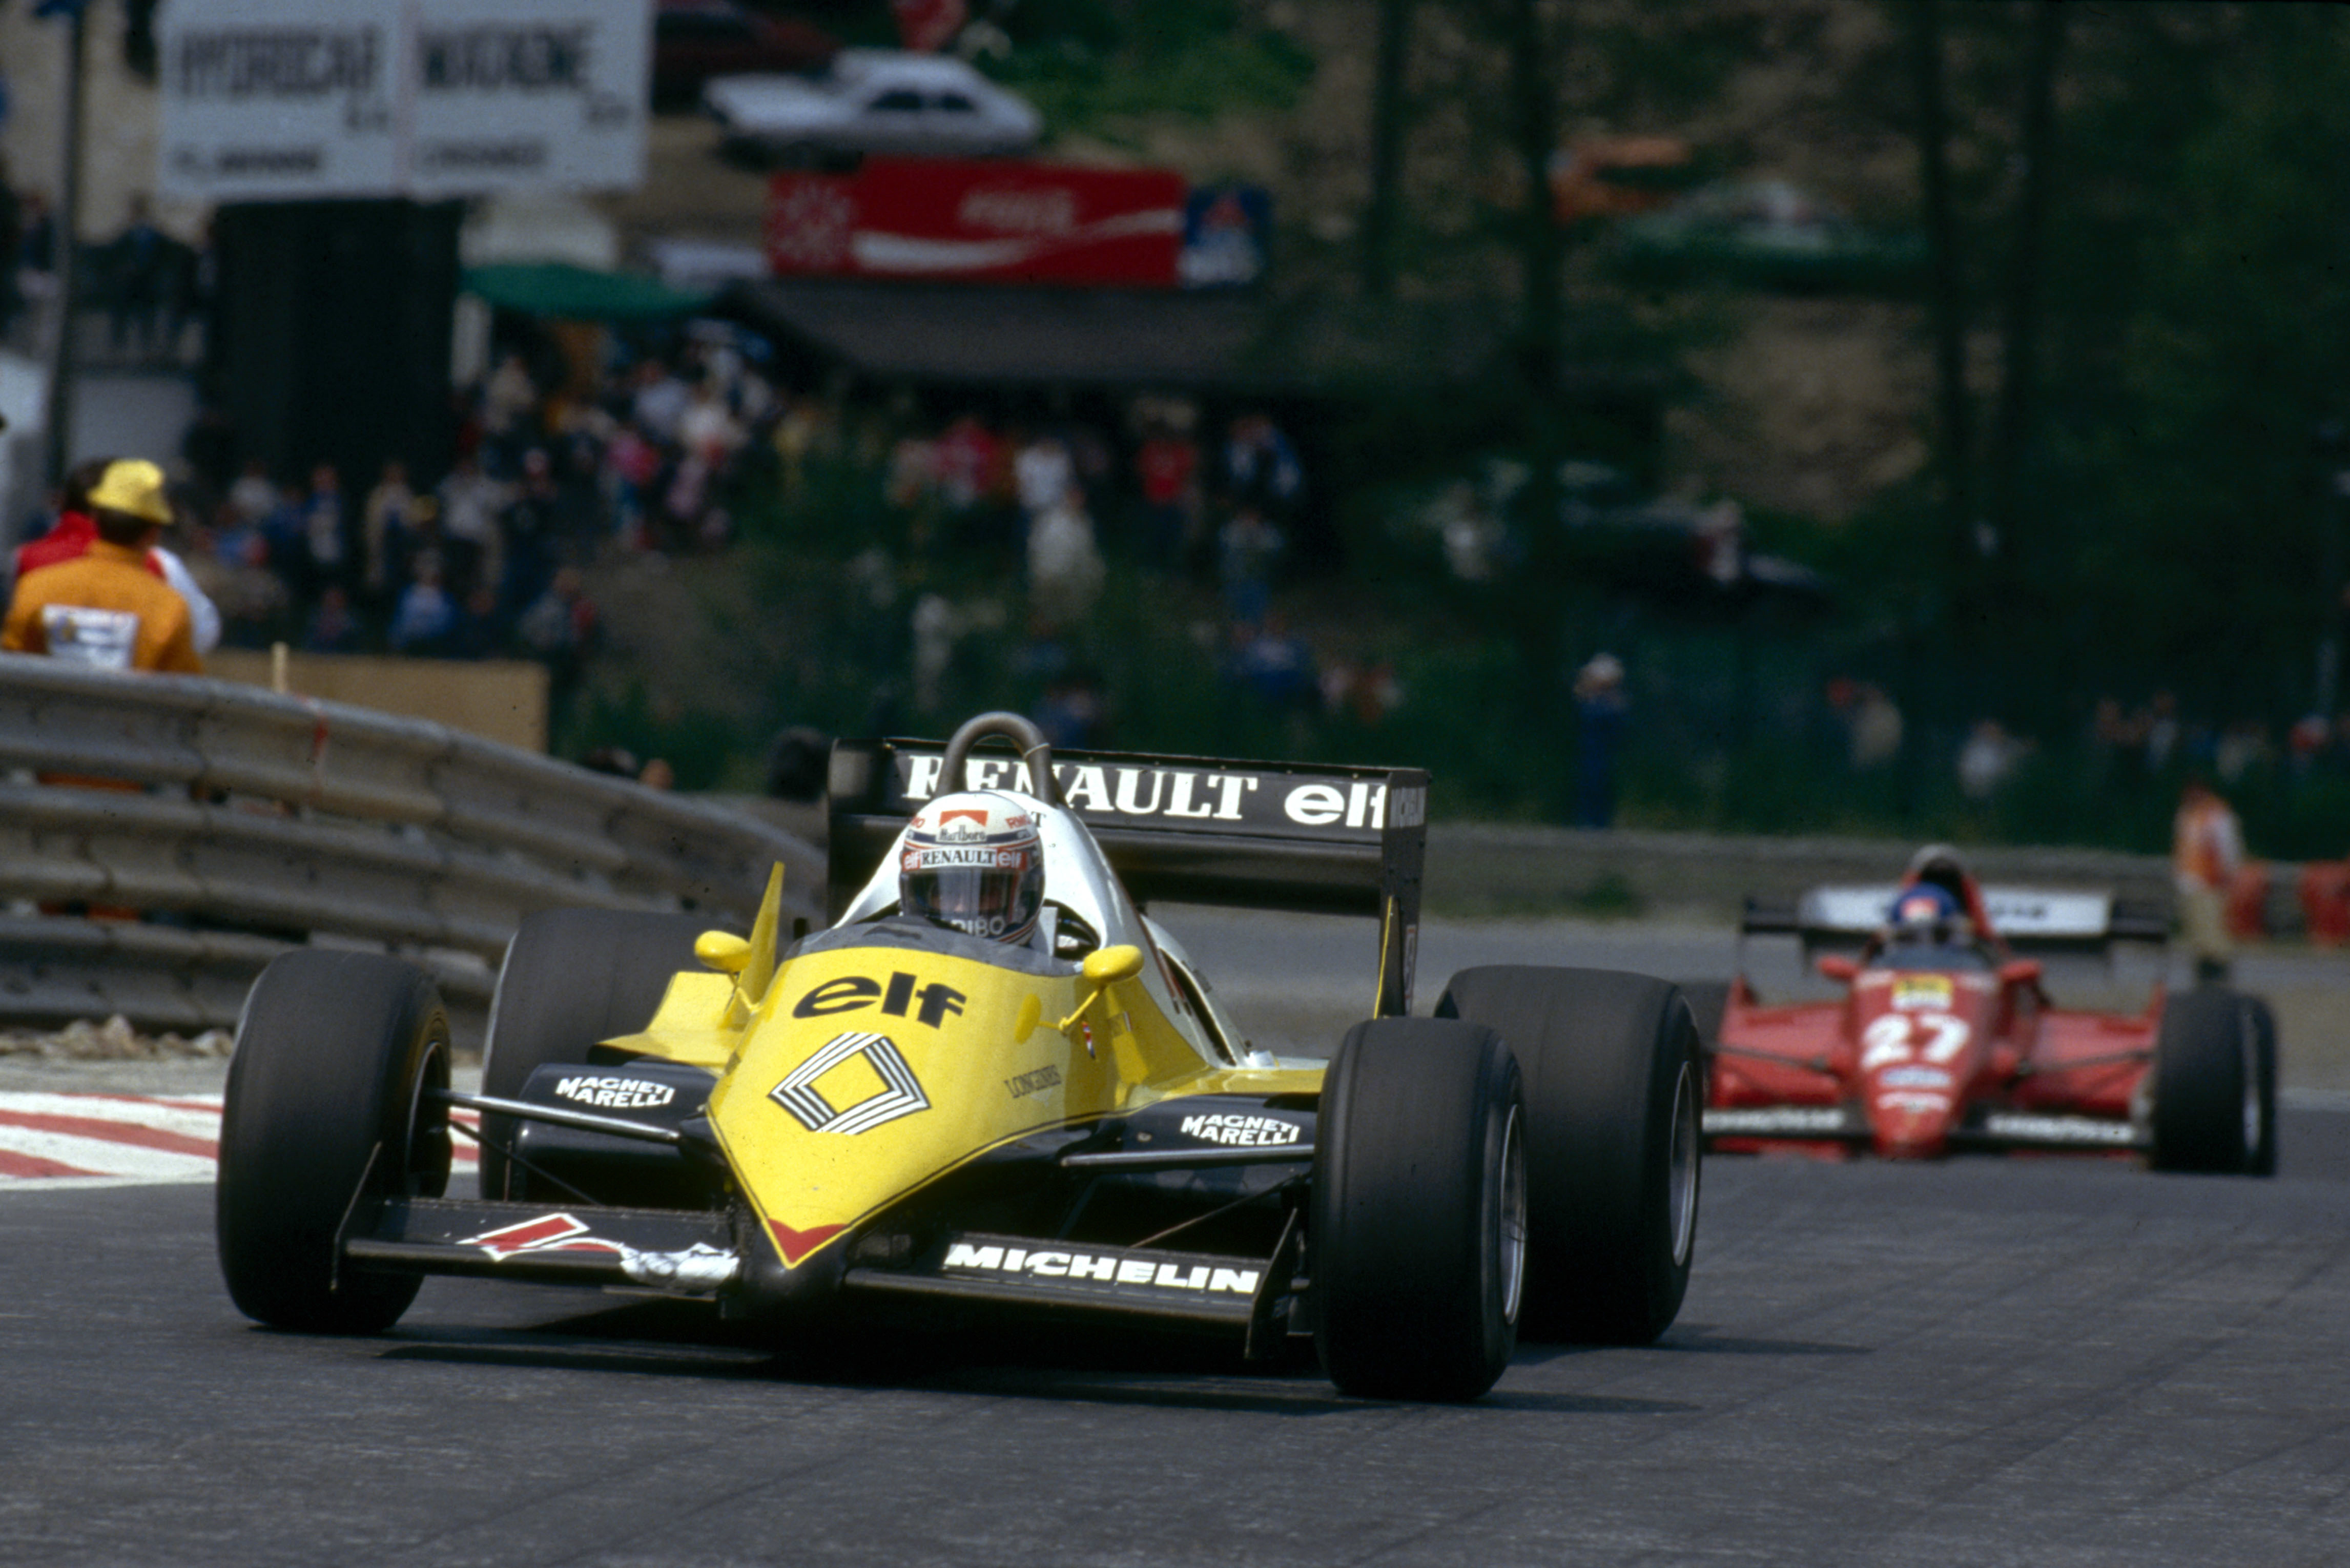 formula one Renault race HD Wallpaper